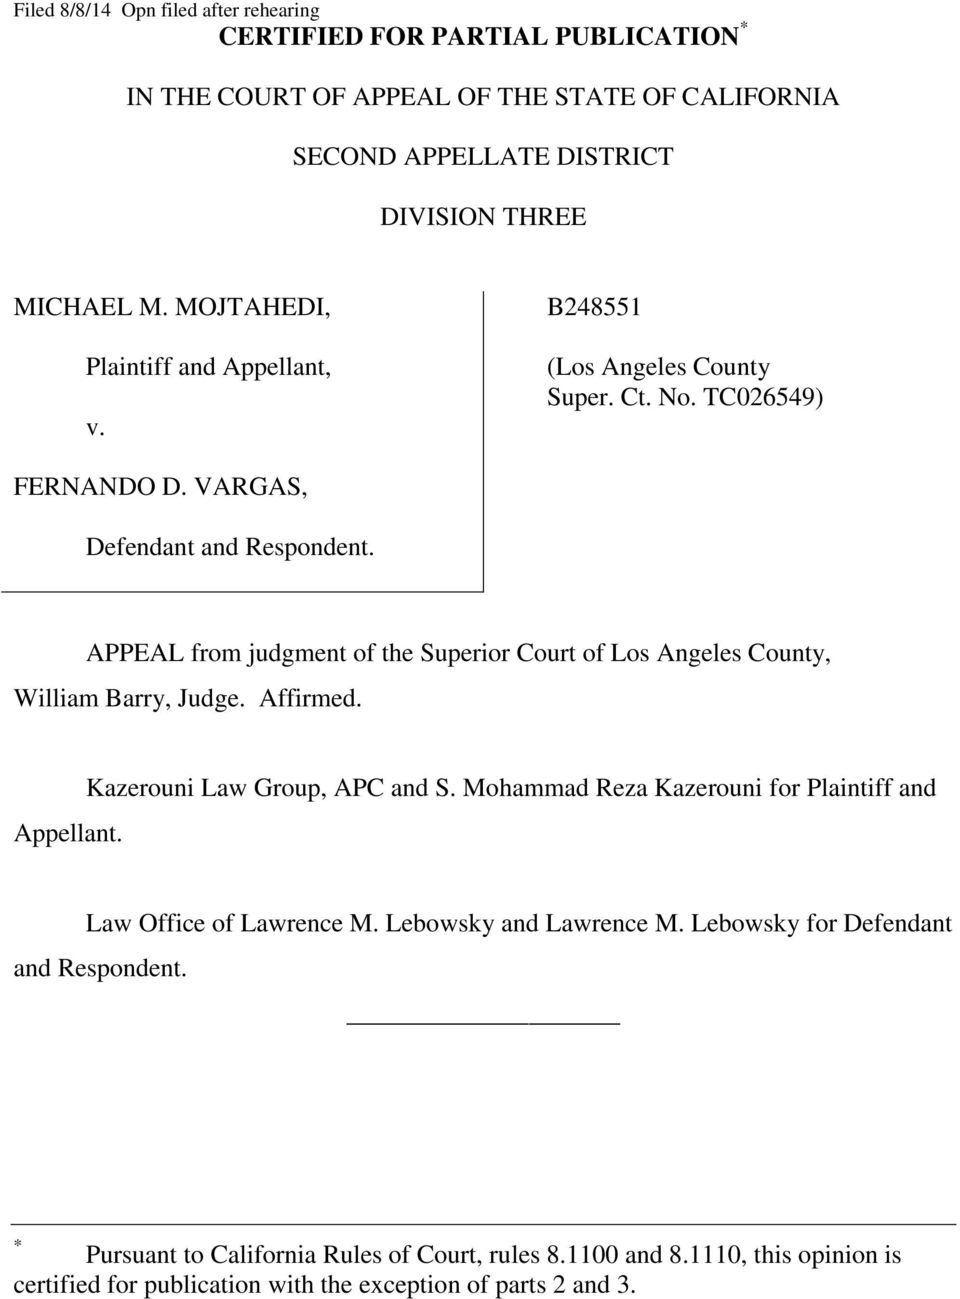 APPEAL from judgment of the Superior Court of Los Angeles County, William Barry, Judge. Affirmed. Appellant. Kazerouni Law Group, APC and S.